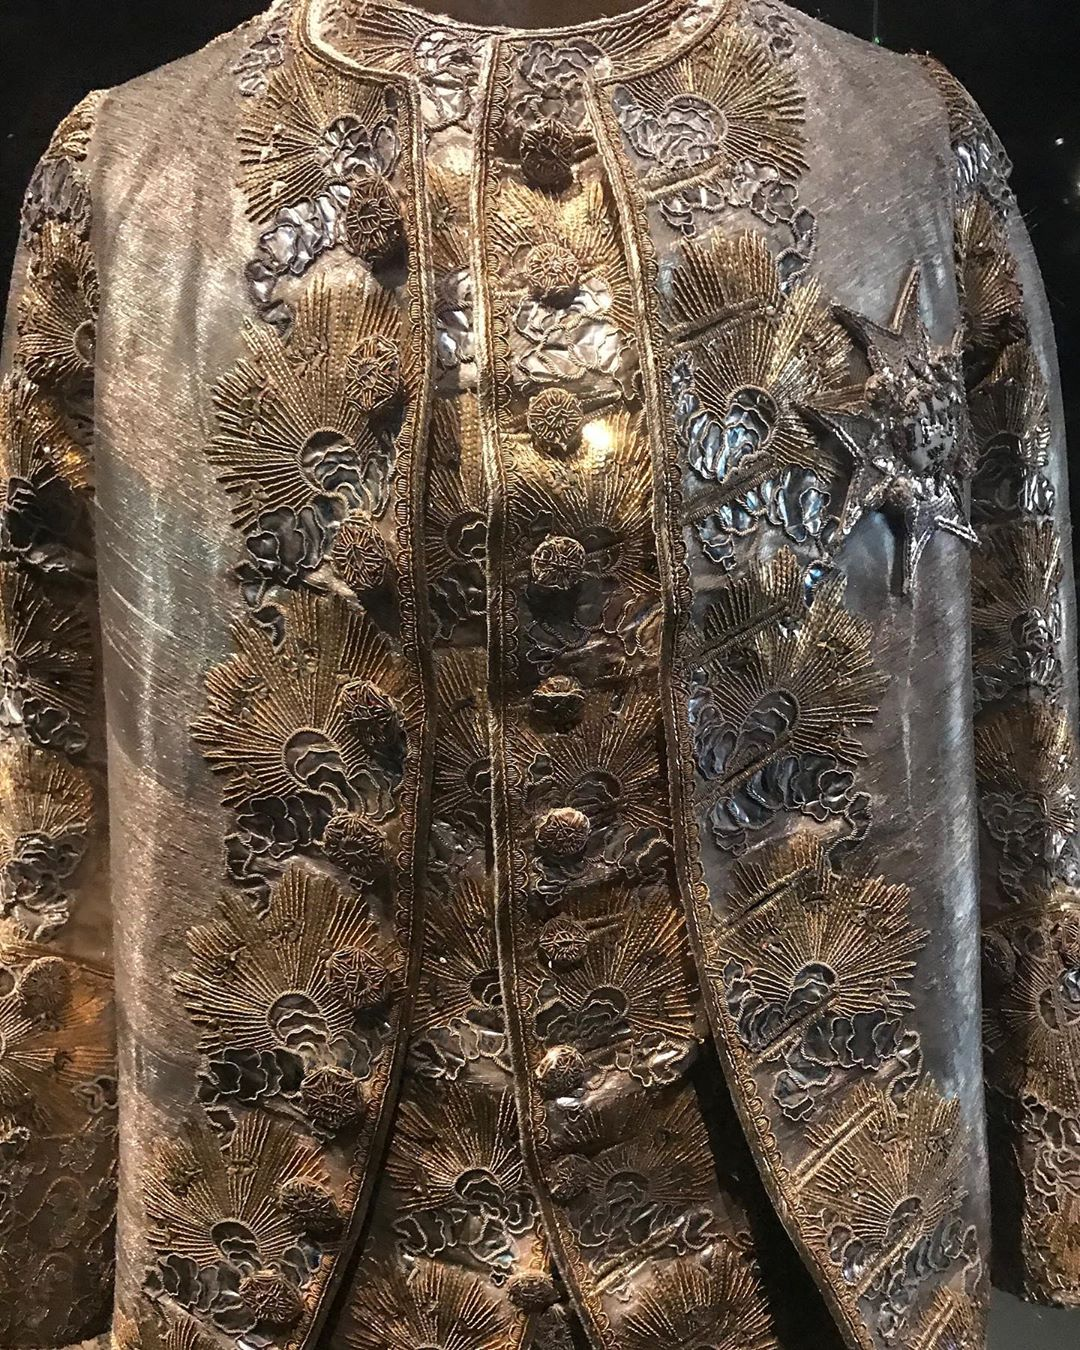 🇸🇪 in 1766 Sofia Magdalena and GustavIII wore shimmering silver wedding garments. The color considered to reflect the divine light For him gold embroidered suns glitter against shimmering blue clouds and for her a three meter long train The corset's waist measurement is only 53.5 cm ___________ #sofiamagdalena #gustaviii #royalarmoryofsweden #stockholm @swedense #insta_sweden #stockholm #royalarmoury #theroyalpalacestockholm #visitstockholm #swedenbeautifulplaces